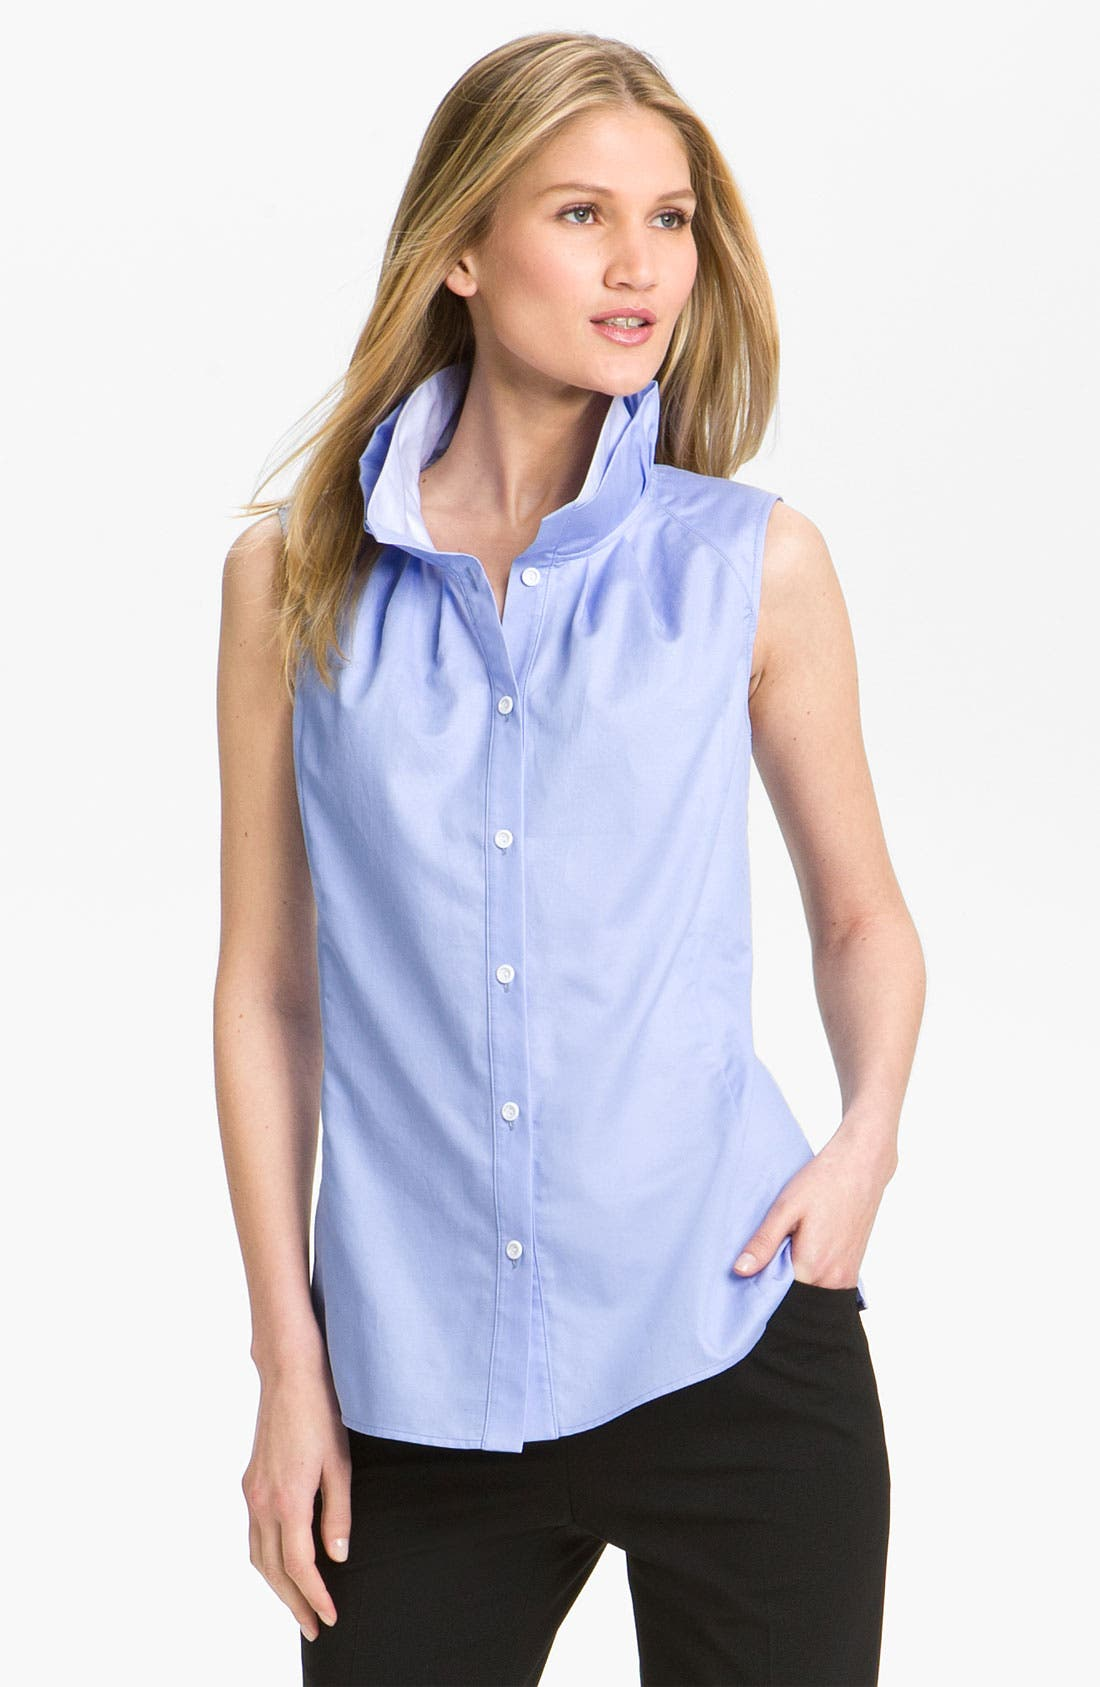 Alternate Image 1 Selected - Lafayette 148 New York 'Annalyse' Two Tone Blouse